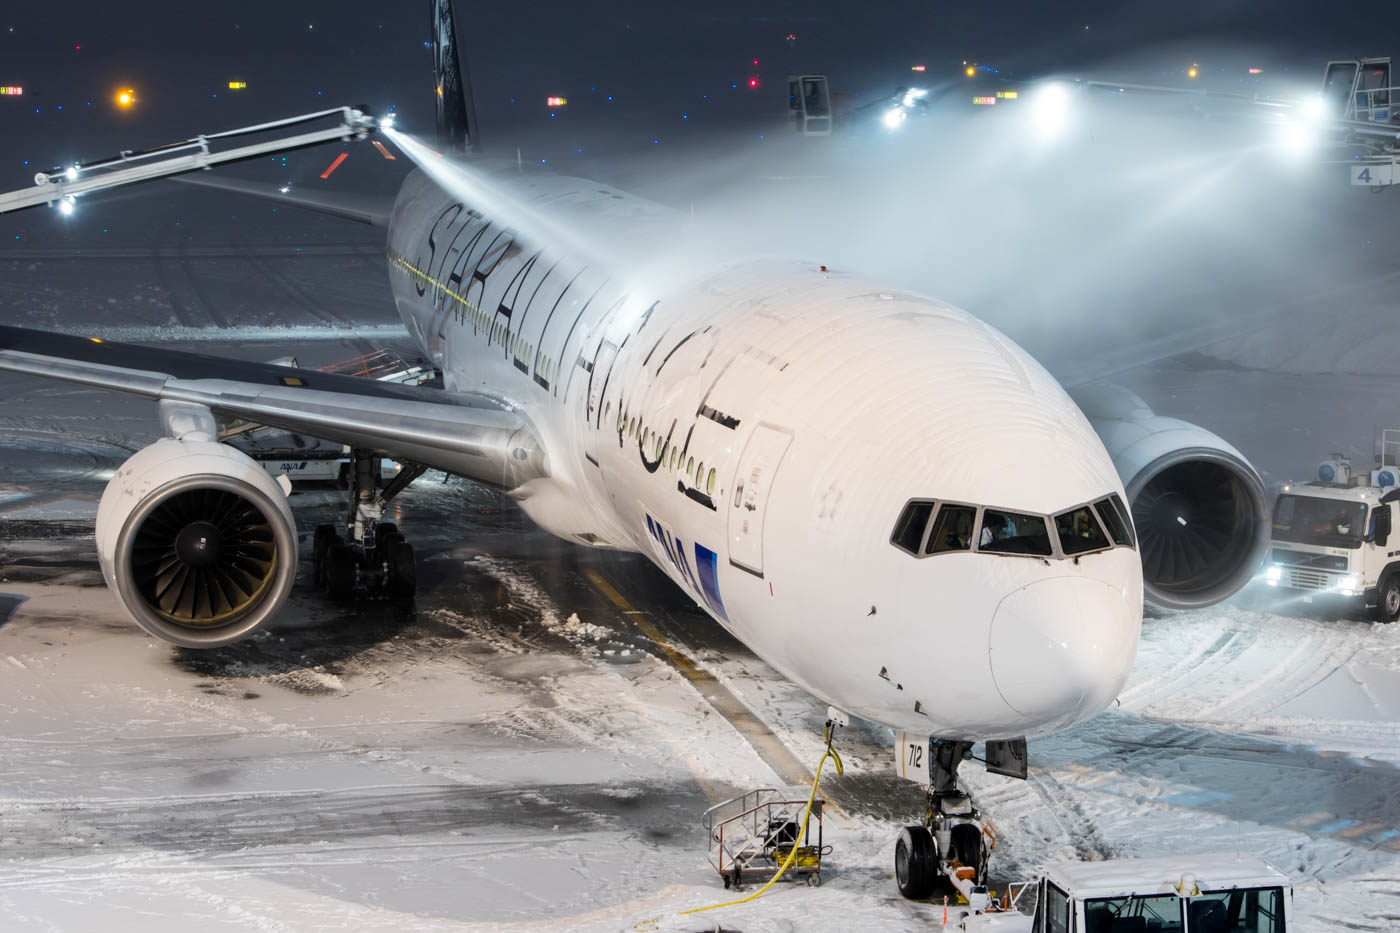 Star Alliance 777 Being Deiced at New Chitose Airport